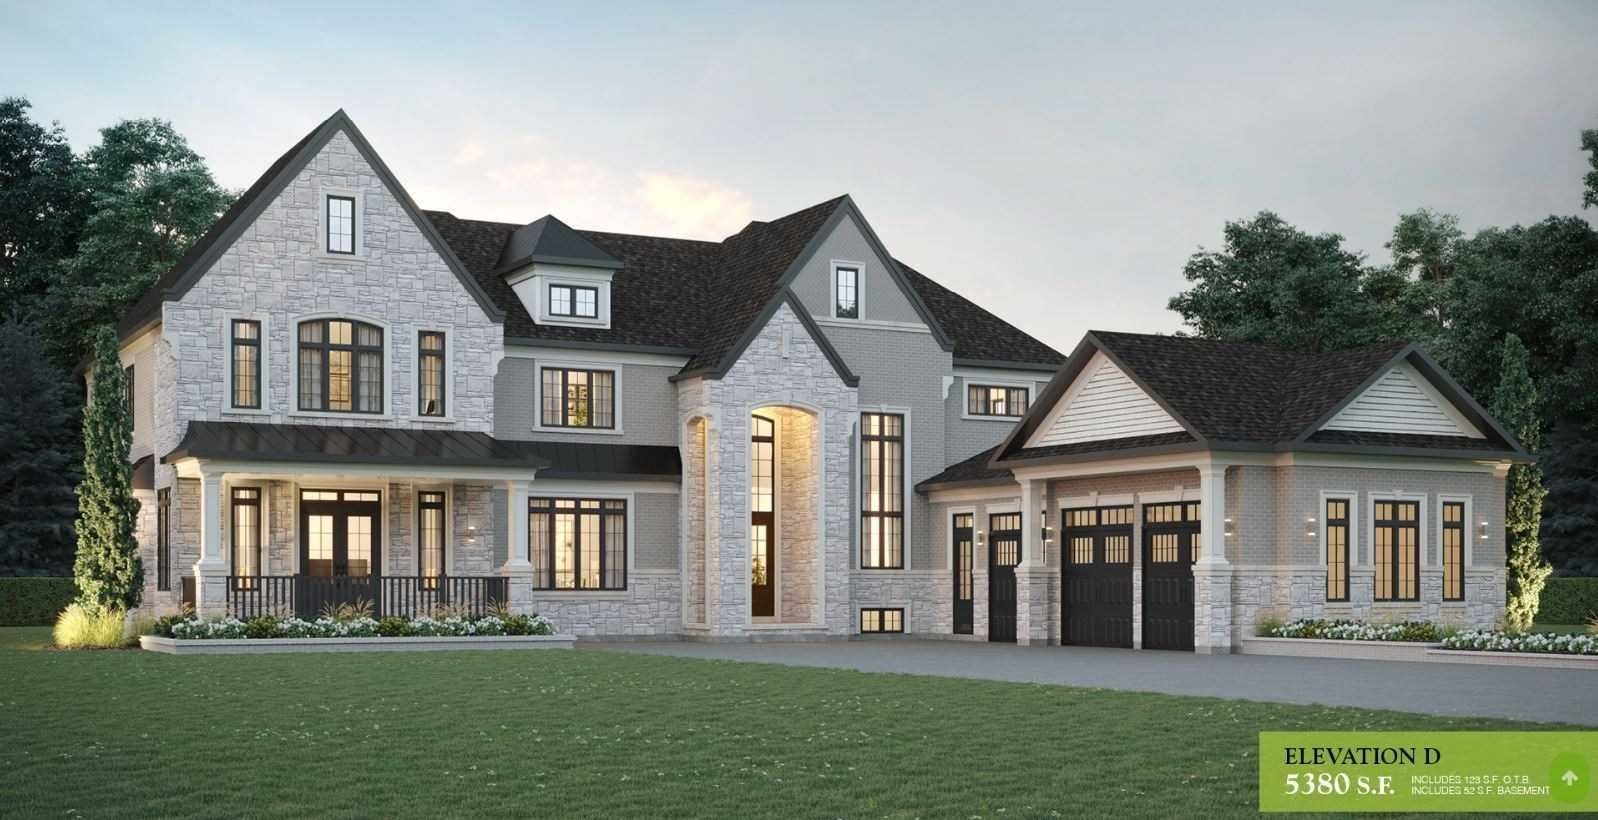 17 Country Lane Dr, Caledon, ON L7E 3S2 - MLS#: W5210782